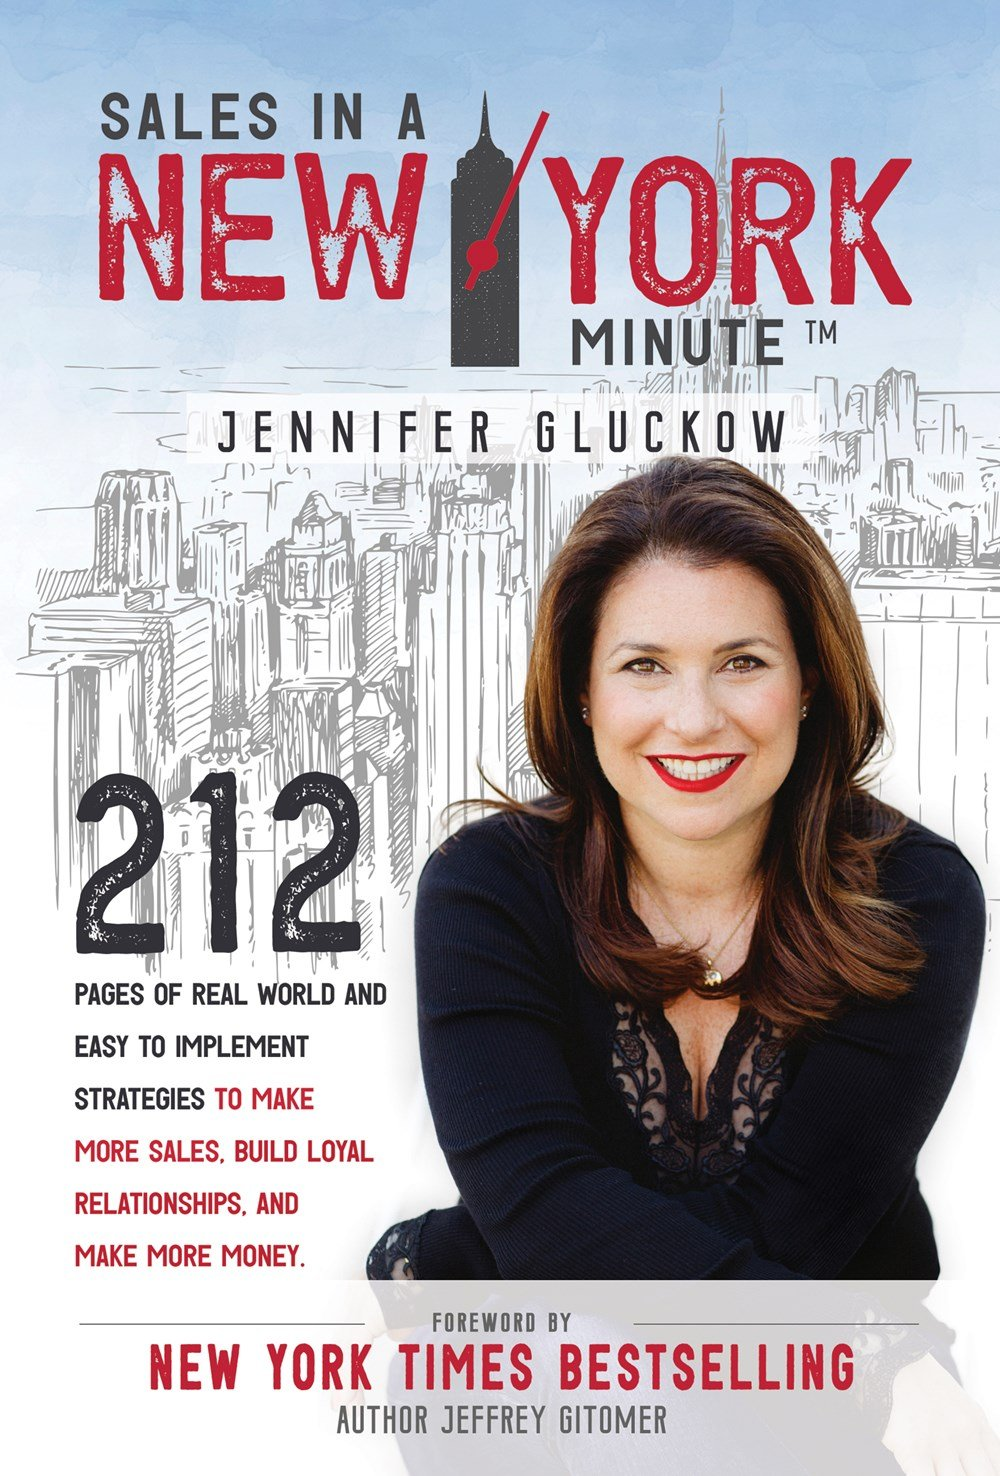 Sales in a New York Minute 212 Pages of Real World and Easy to Implement Strategies to Make More Sal